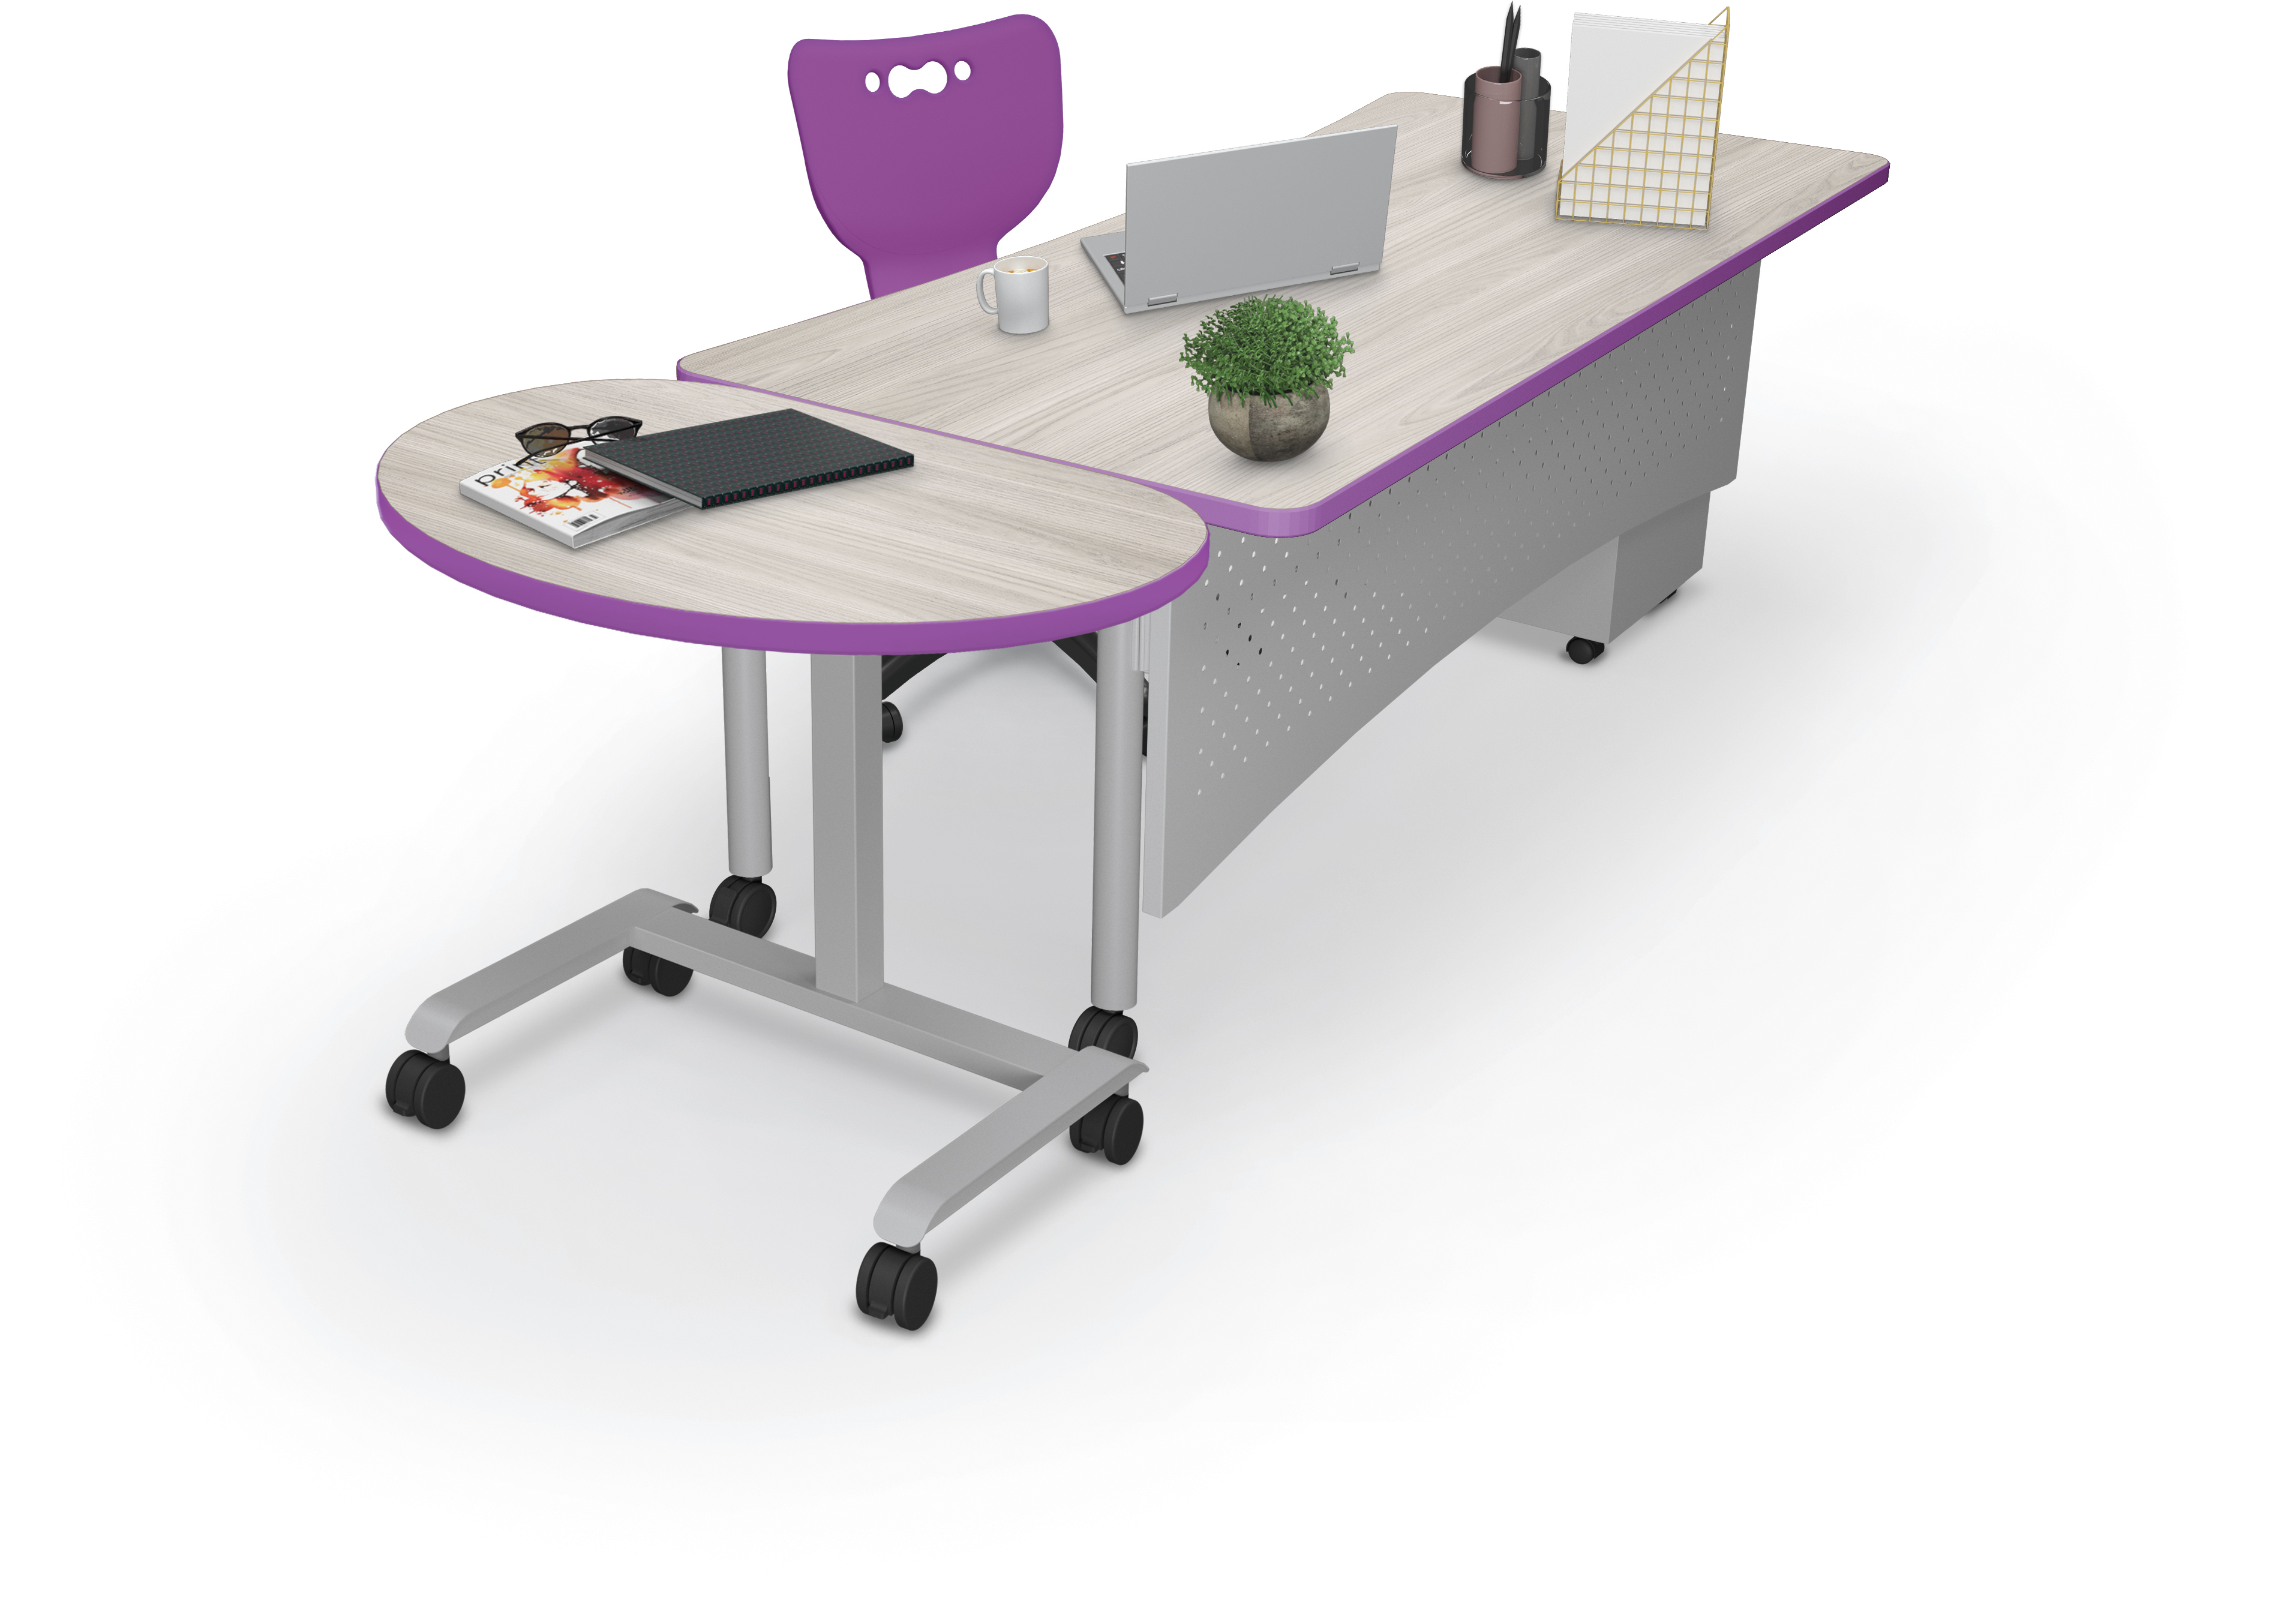 • Avid Modular Desk 7230 Table + Pneumatic End Table w-Props w-Hierarchy 5-Star Chair Master